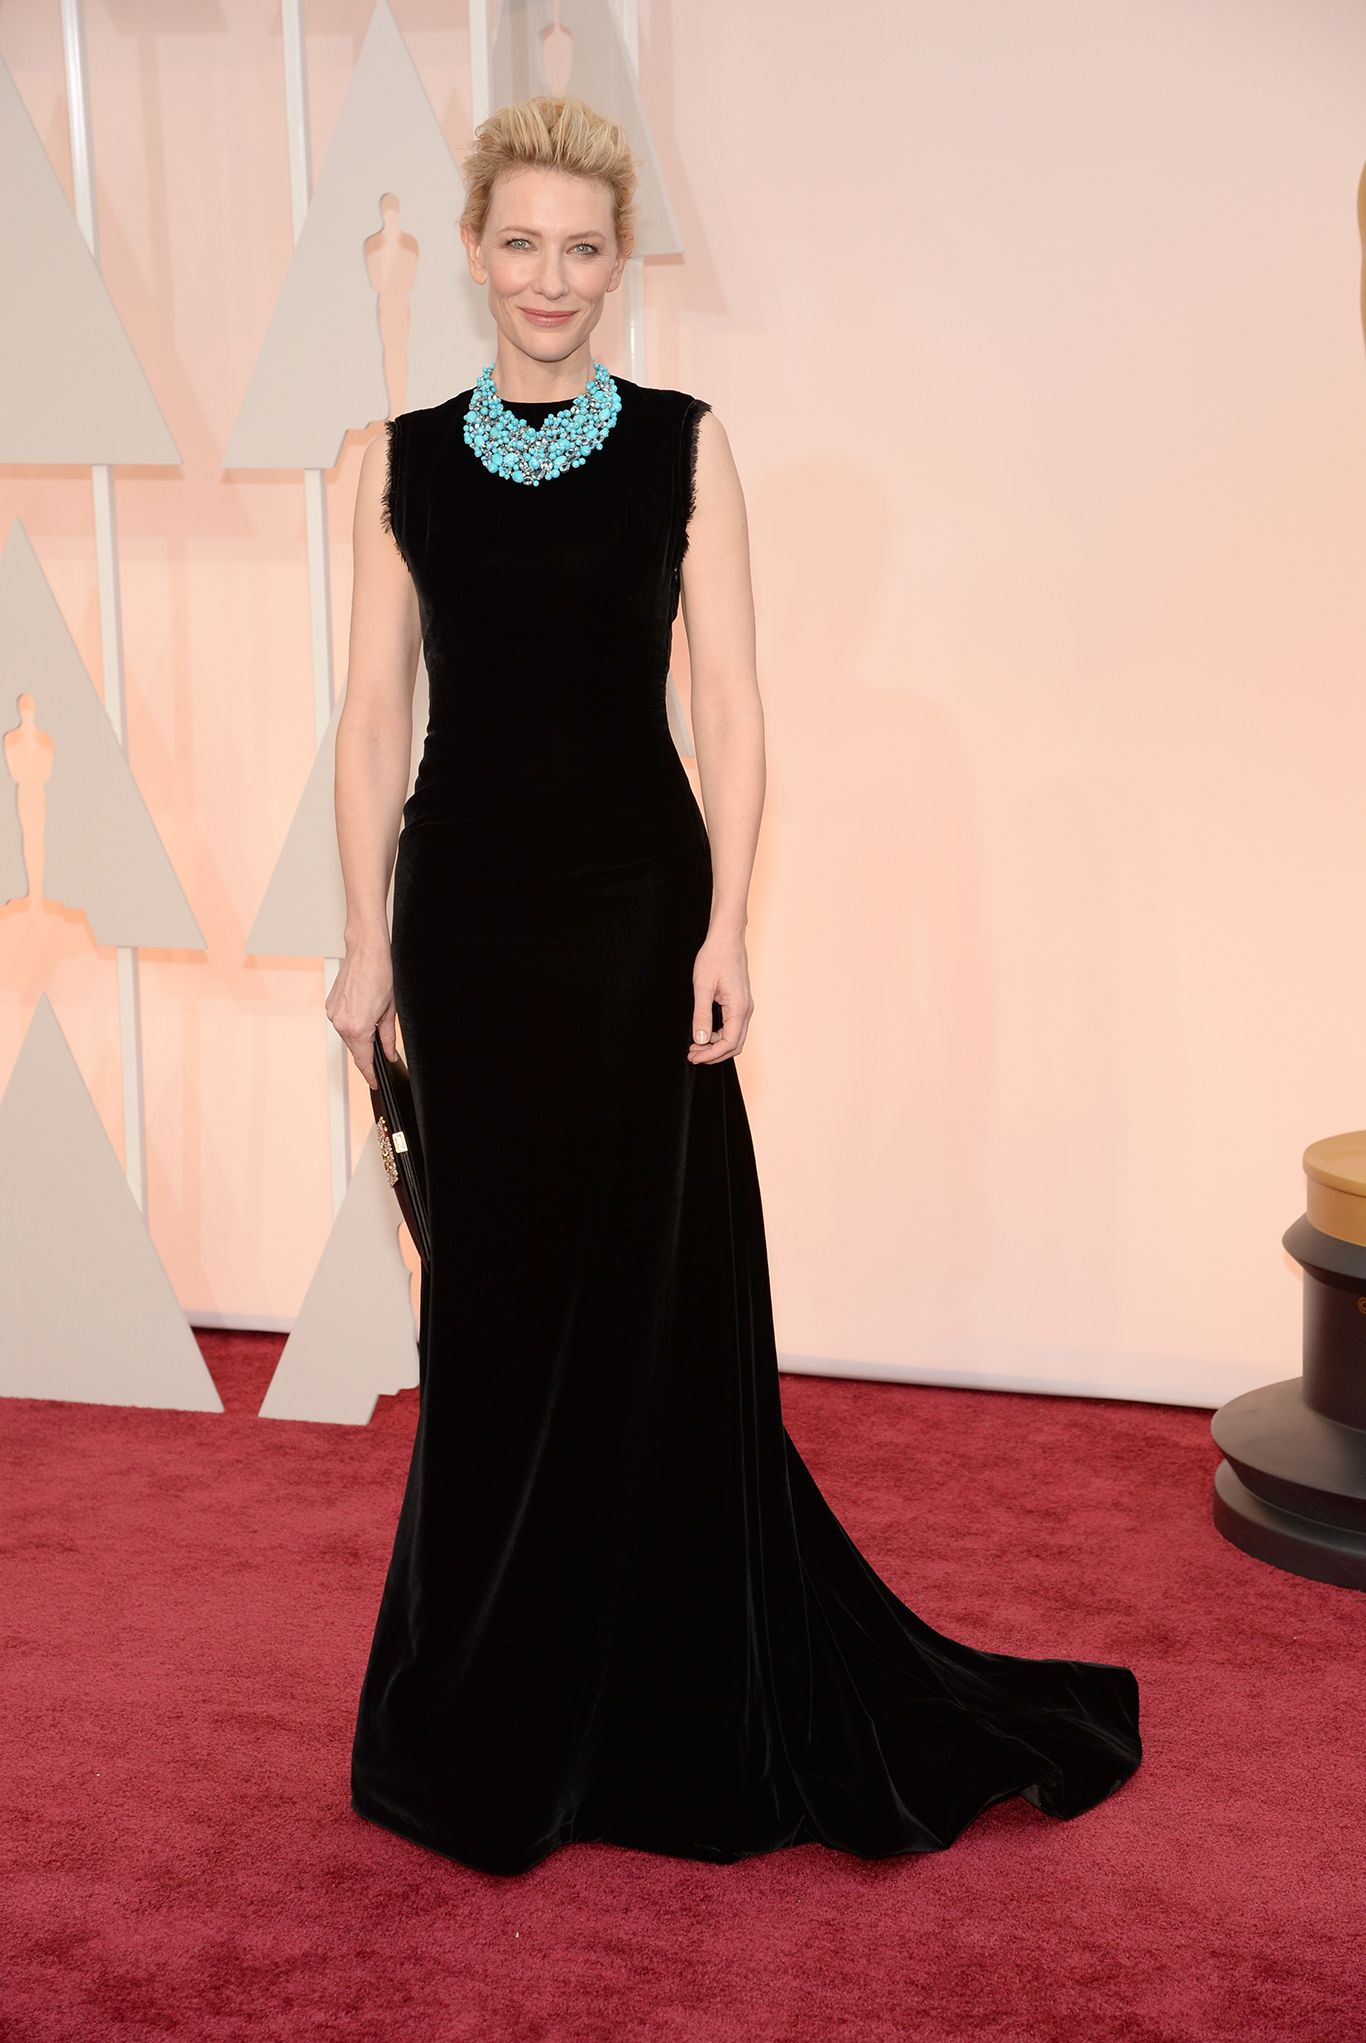 The 2015 Academy Awards: All the Pictures From the Red Carpet Cate Blanchette in Maison Martin Margiela